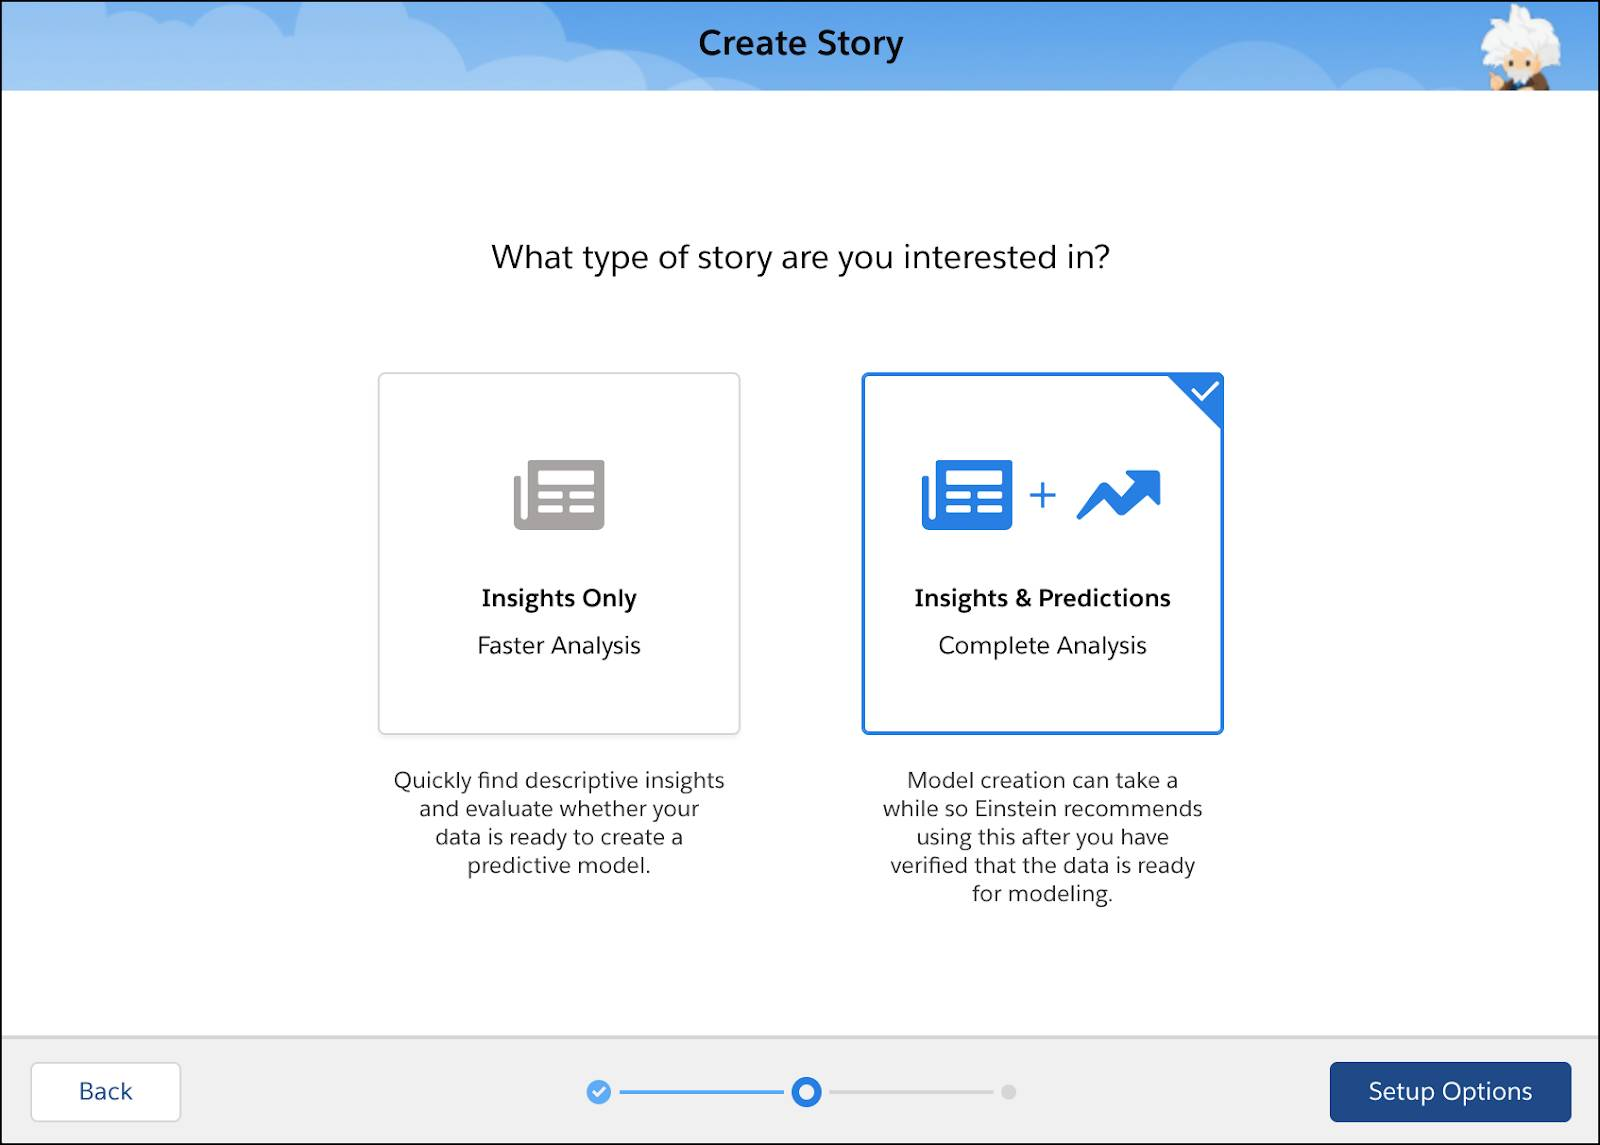 Story setup screen - select story type (Insights Only or Insights & Predictions)